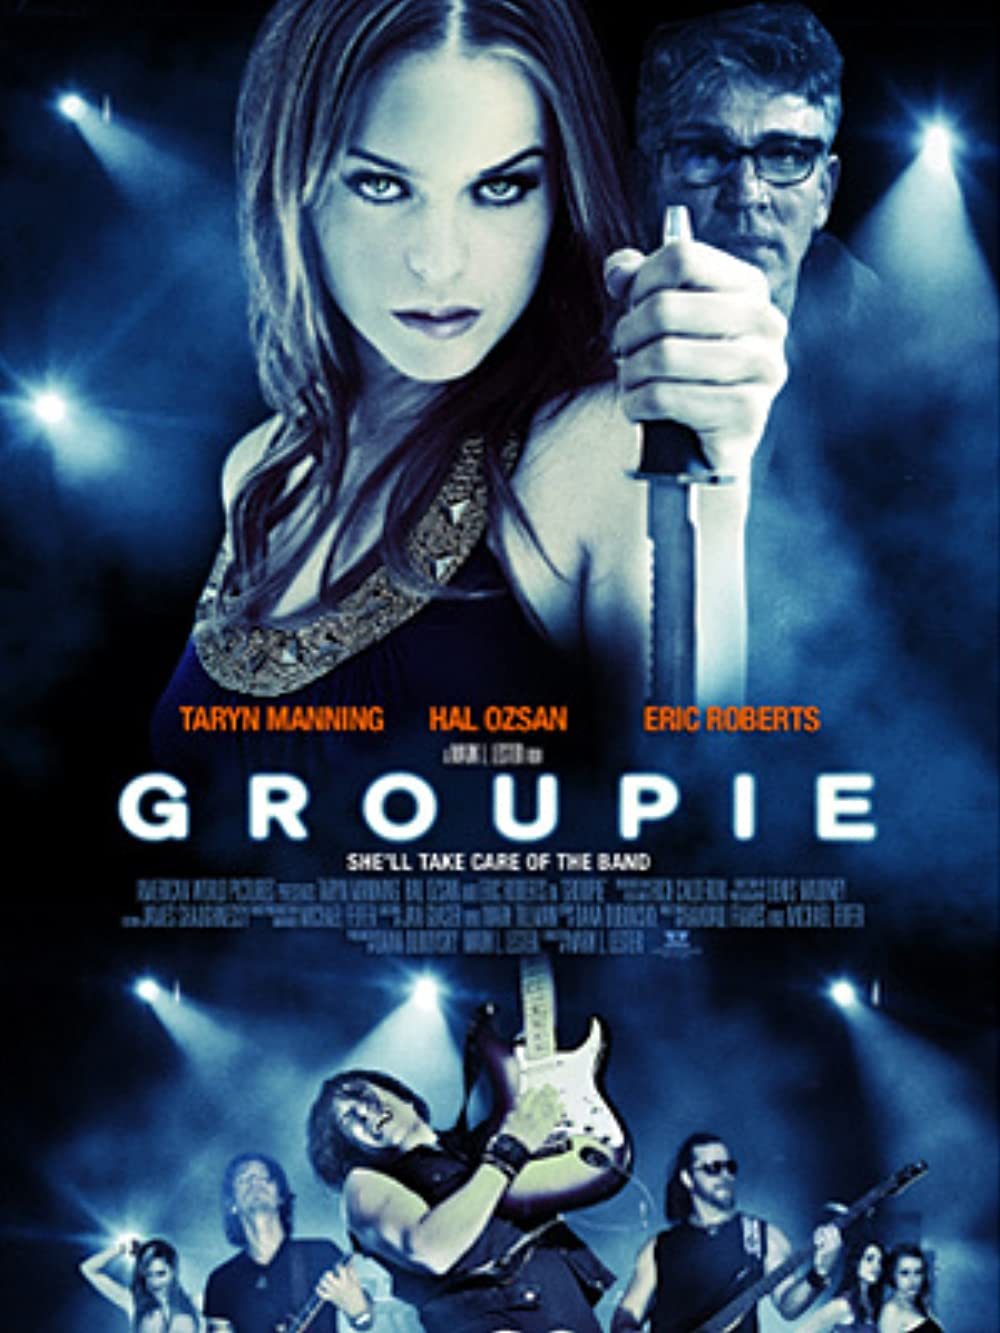 18+ Groupie 2010 Hindi Dual Audio 720p UNCUT BluRay 1.12GB Download